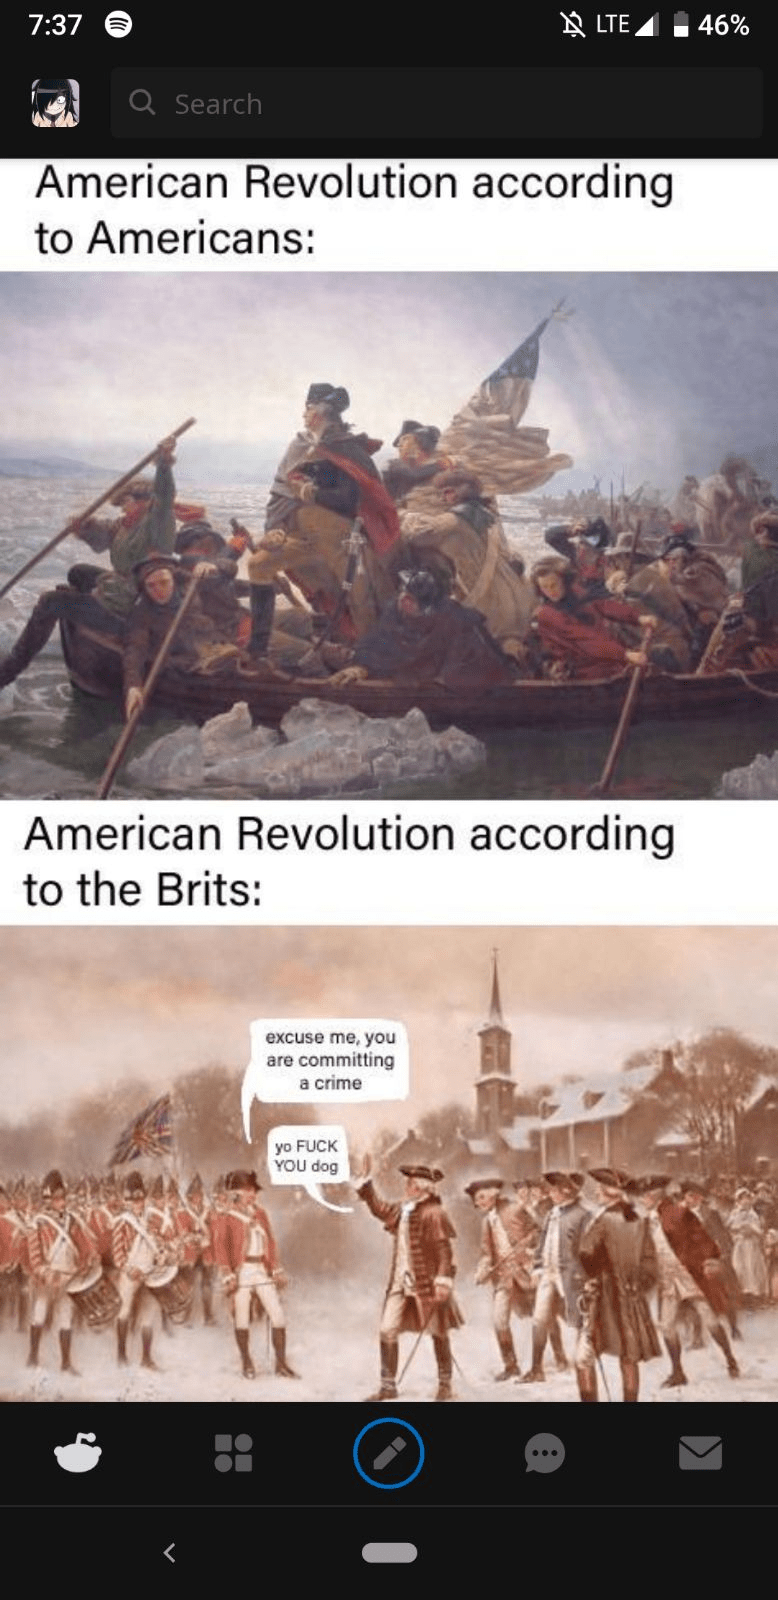 Rebellion - N LTE 46% 7:37 Q Search American Revolution according to Americans: American Revolution according to the Brits: excuse me, you are committing a crime yo FUCK YOU dog